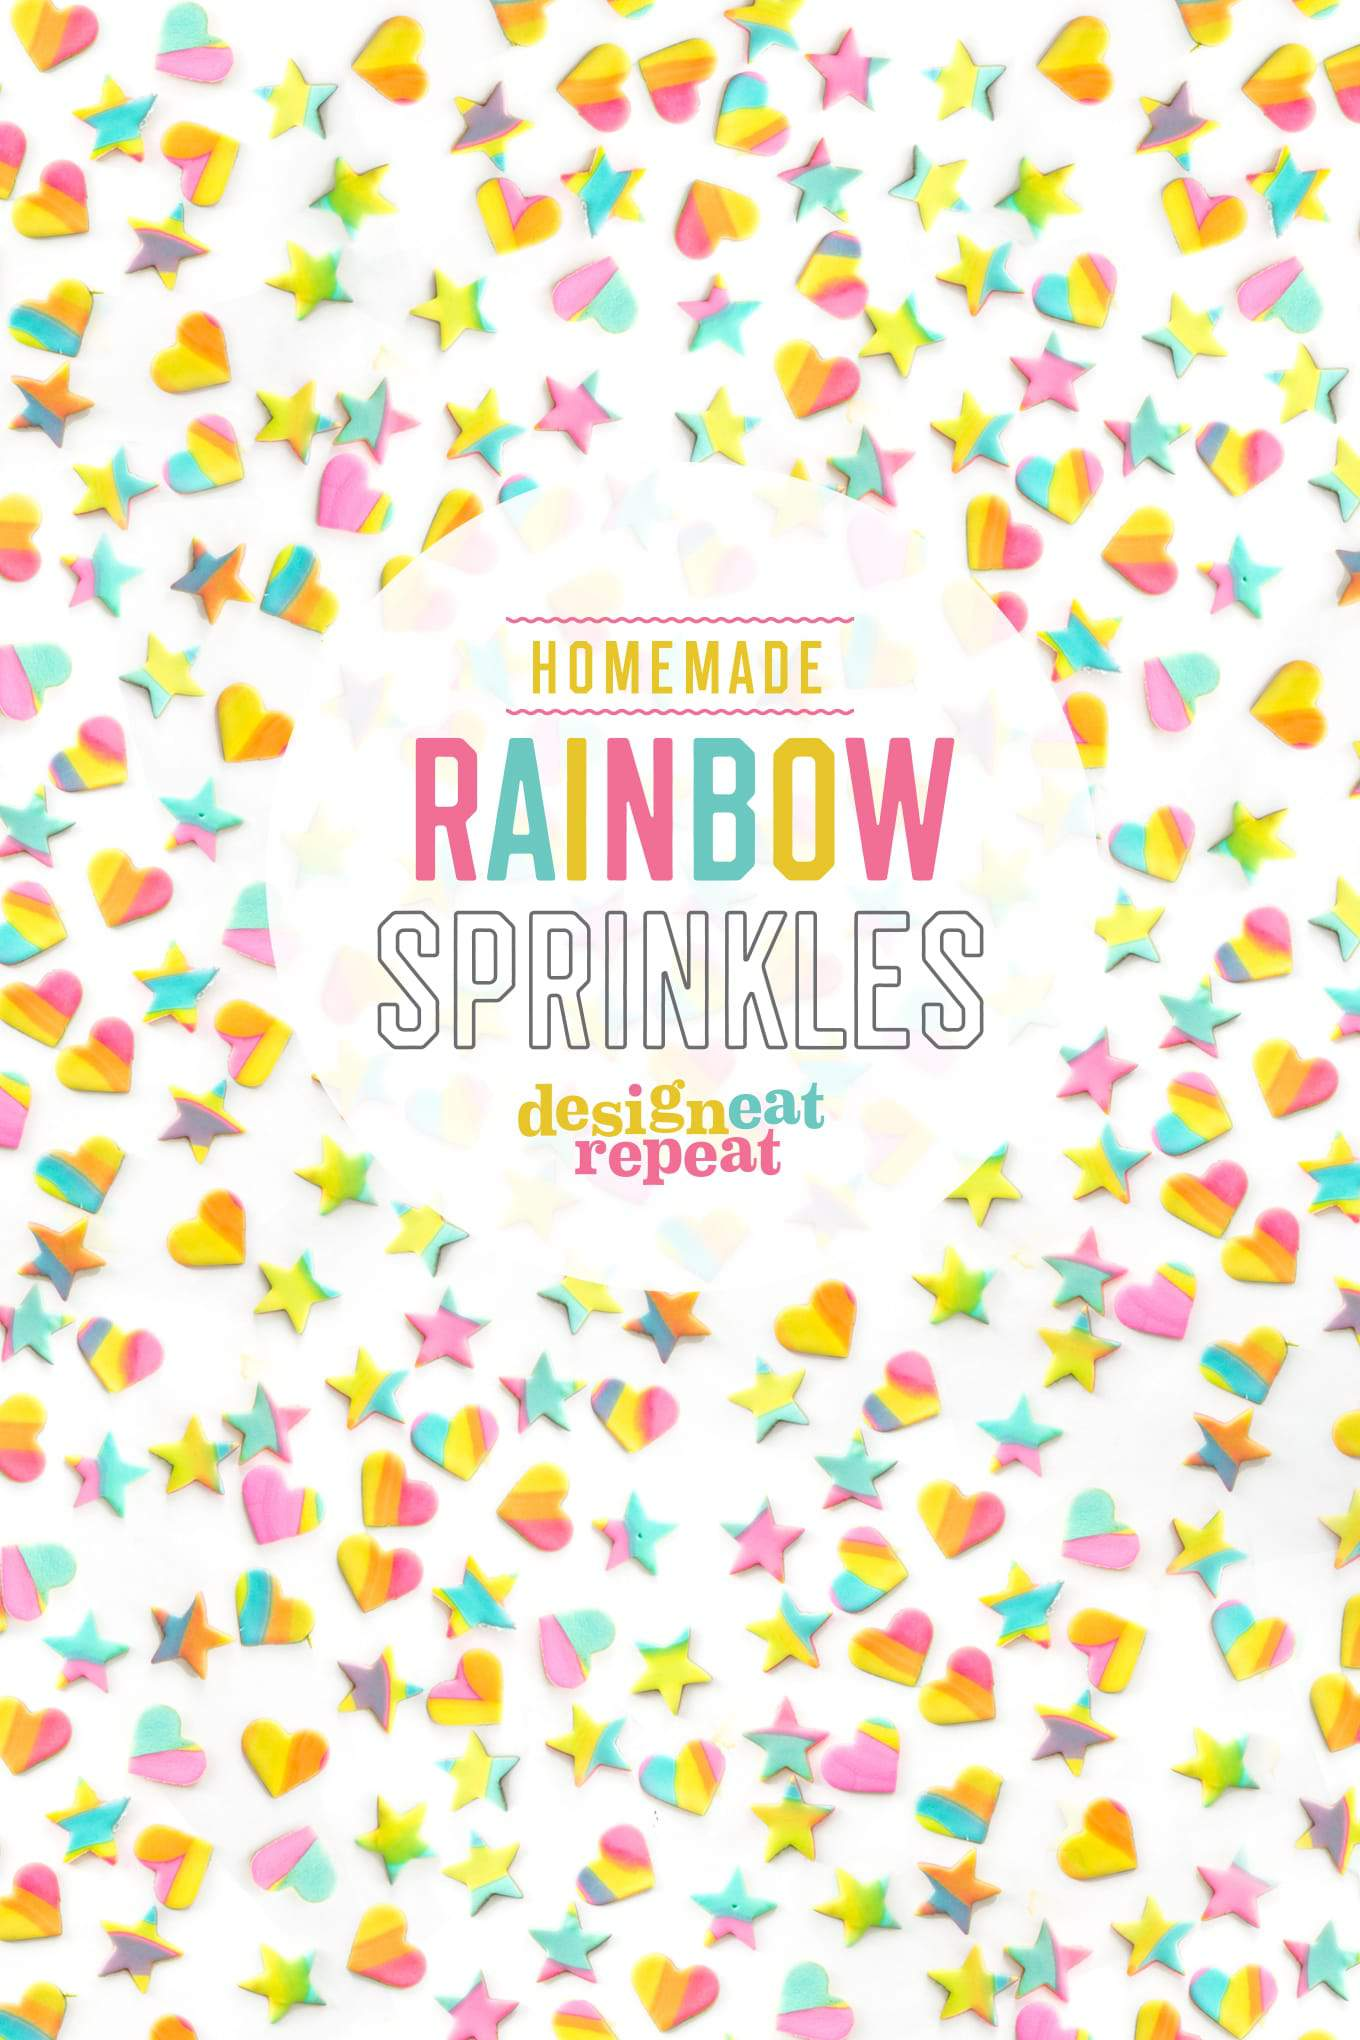 Learn how to make these EASY homemade rainbow sprinkles! Perfect way to turn any baked creation into a colorful treat!